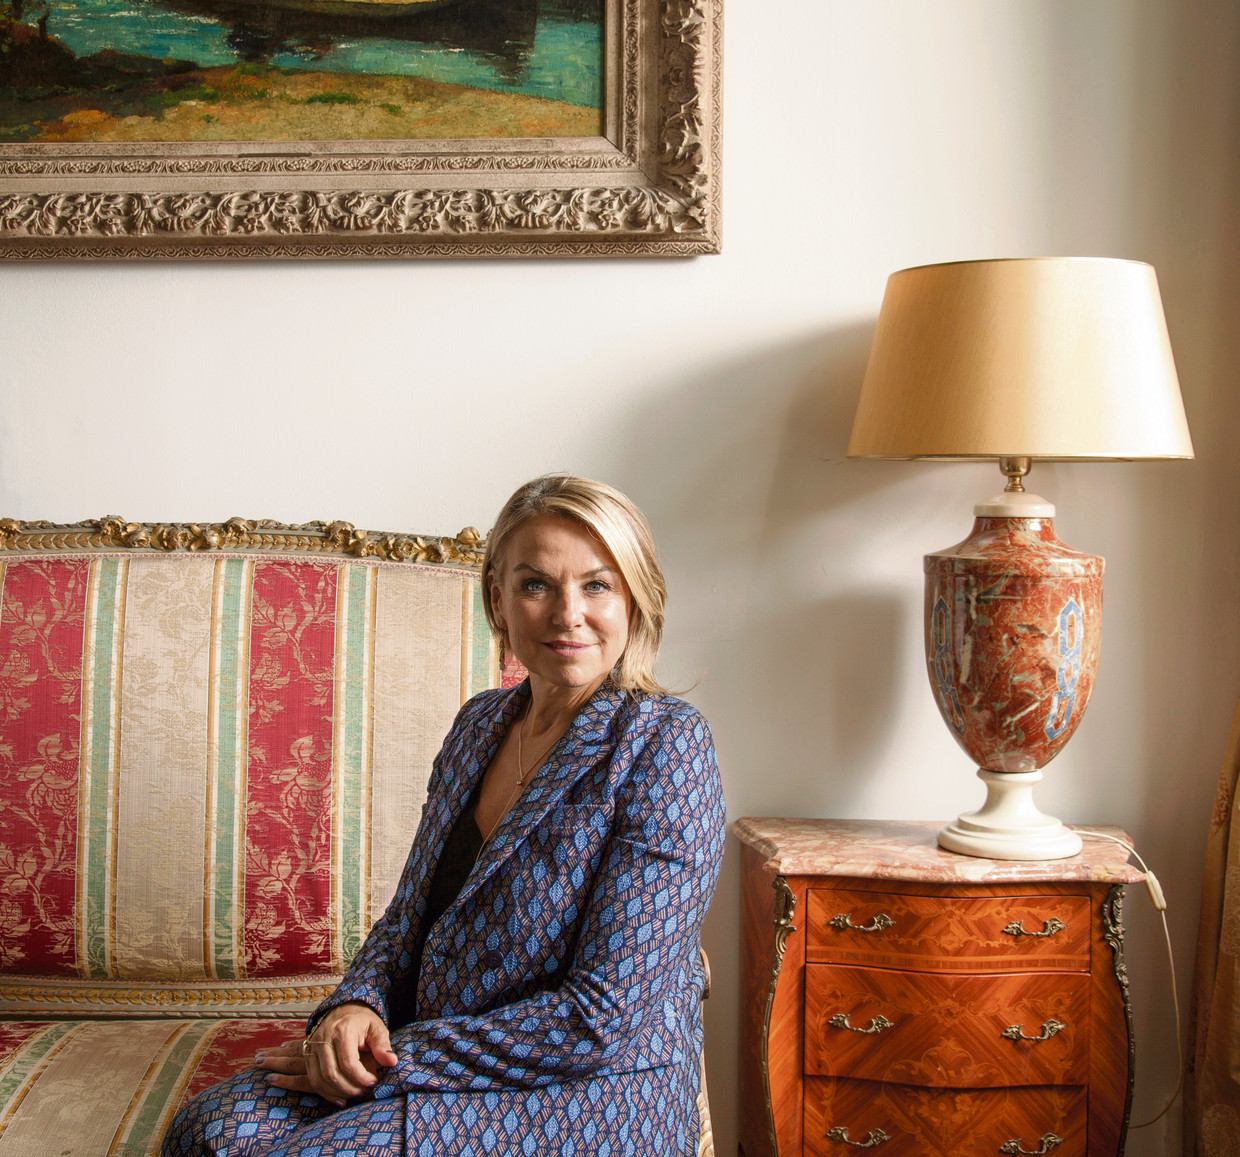 Esther Perel. Beeld Getty Images